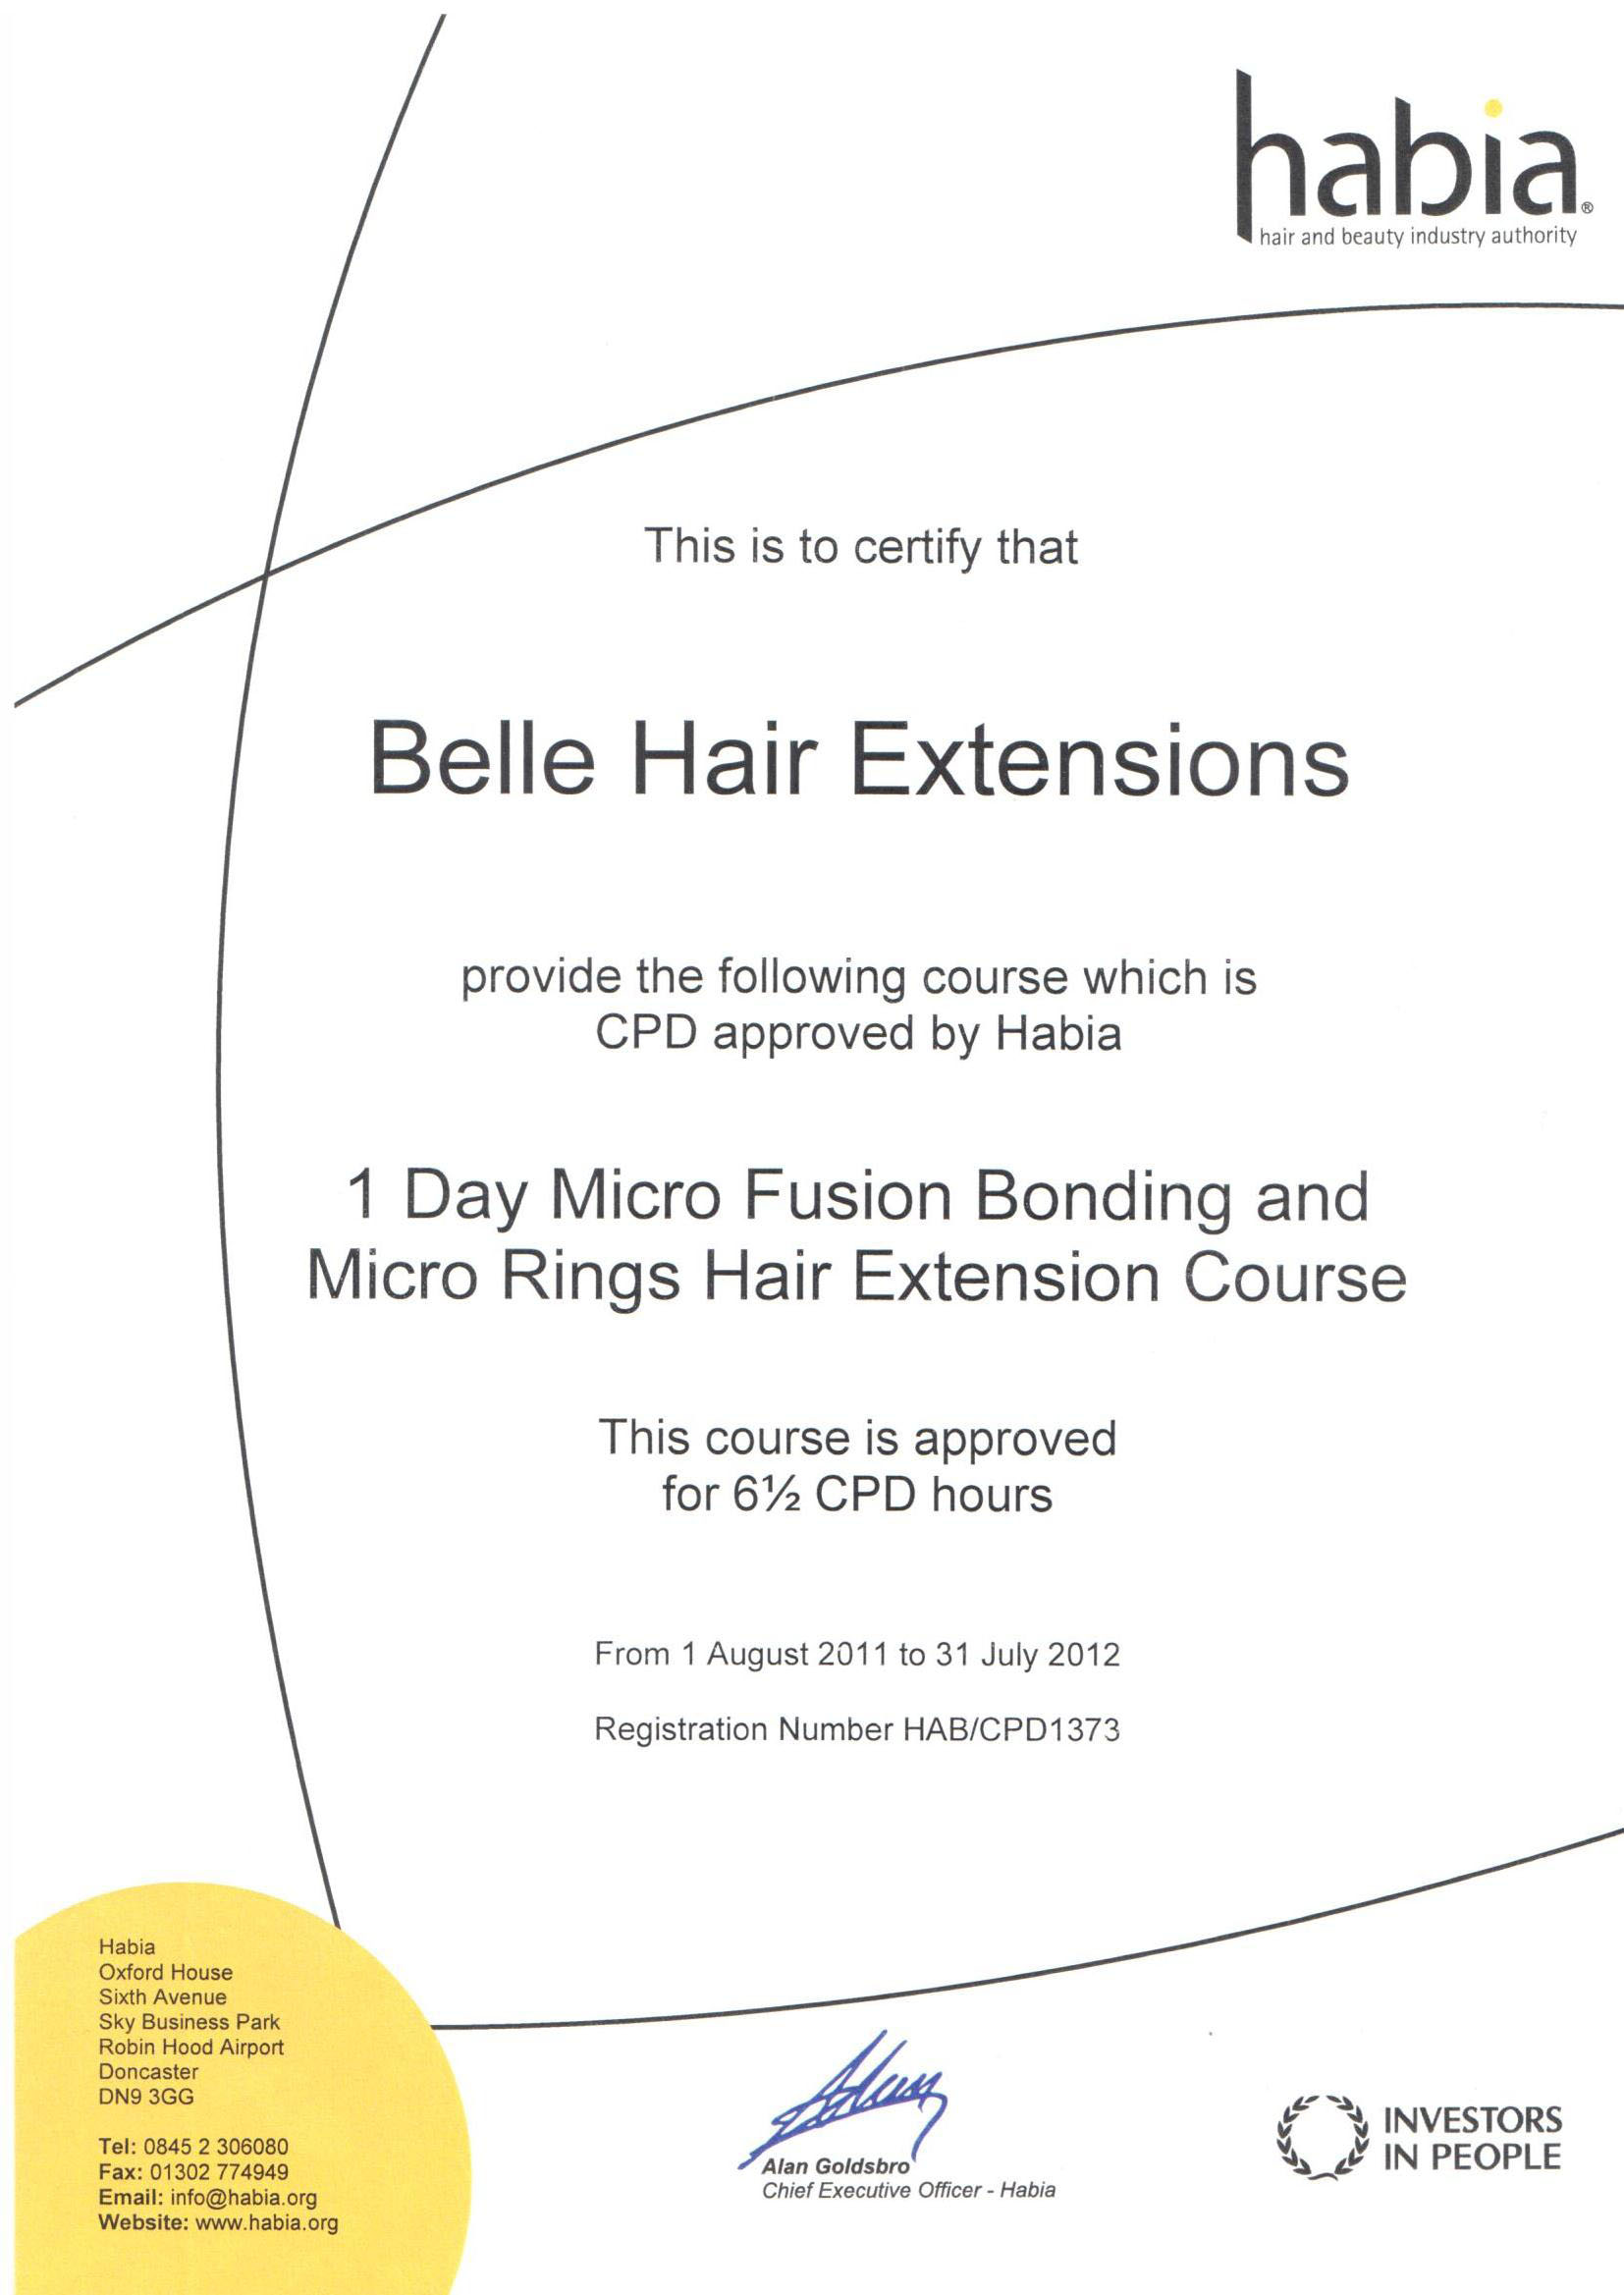 Hair Extensions Course What To Look For When Booking